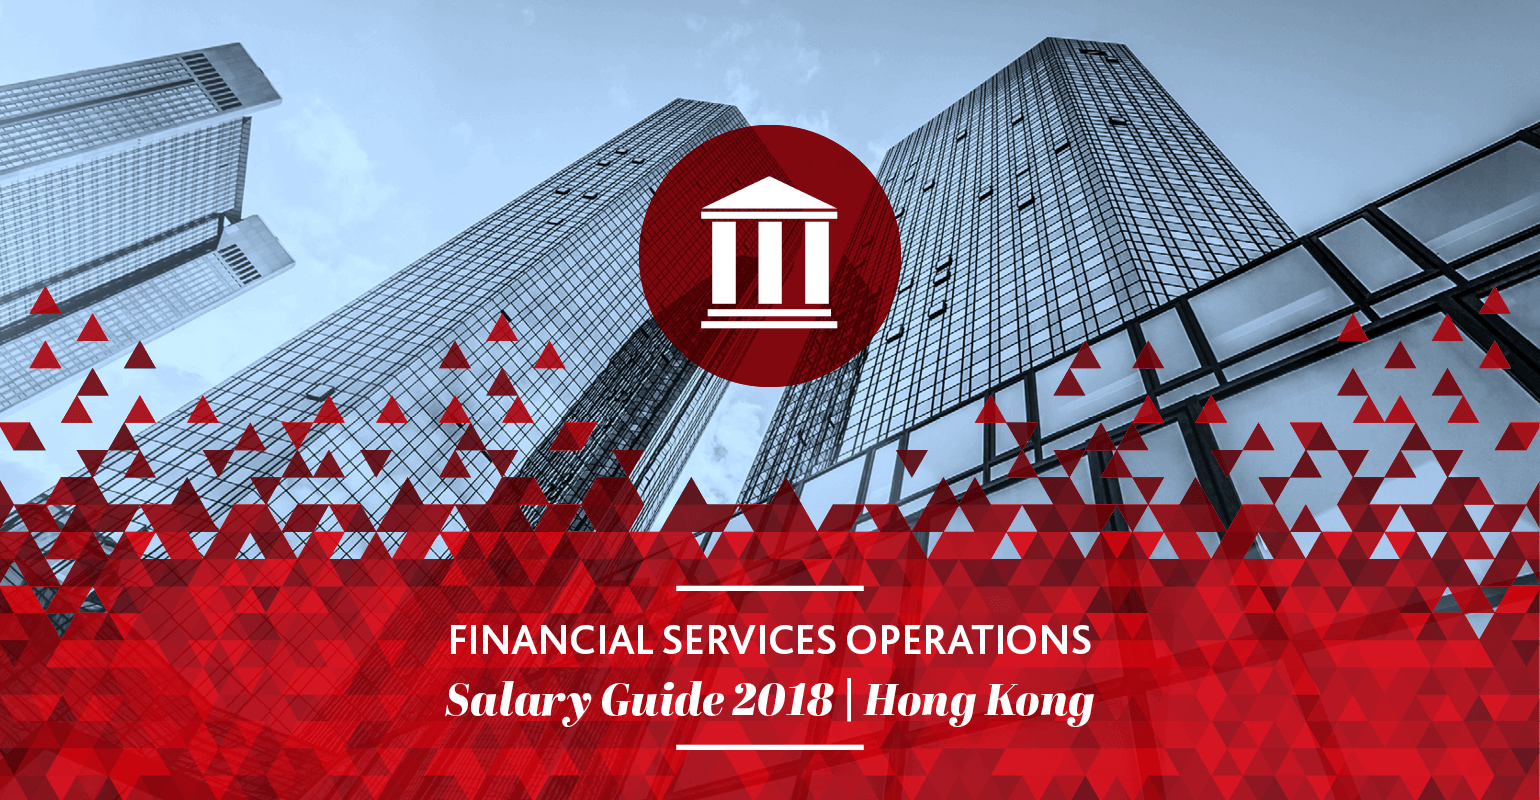 Financial Services Operations Salary Guide